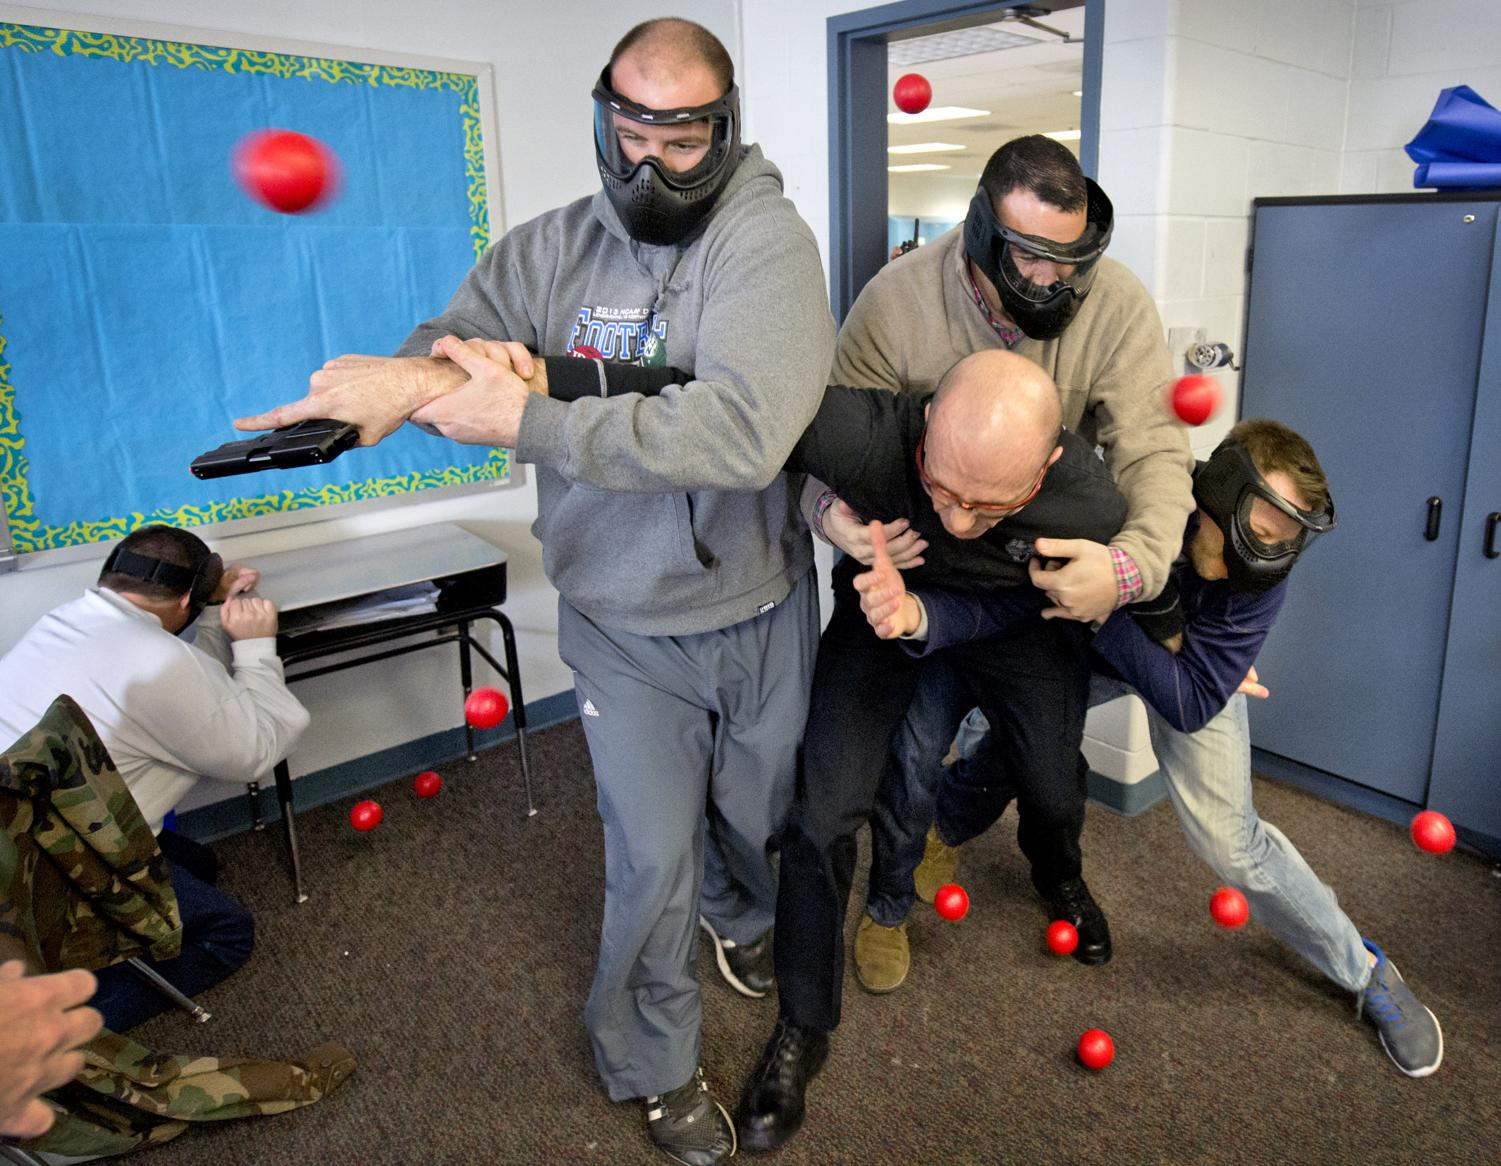 Teachers training for active shooter situations